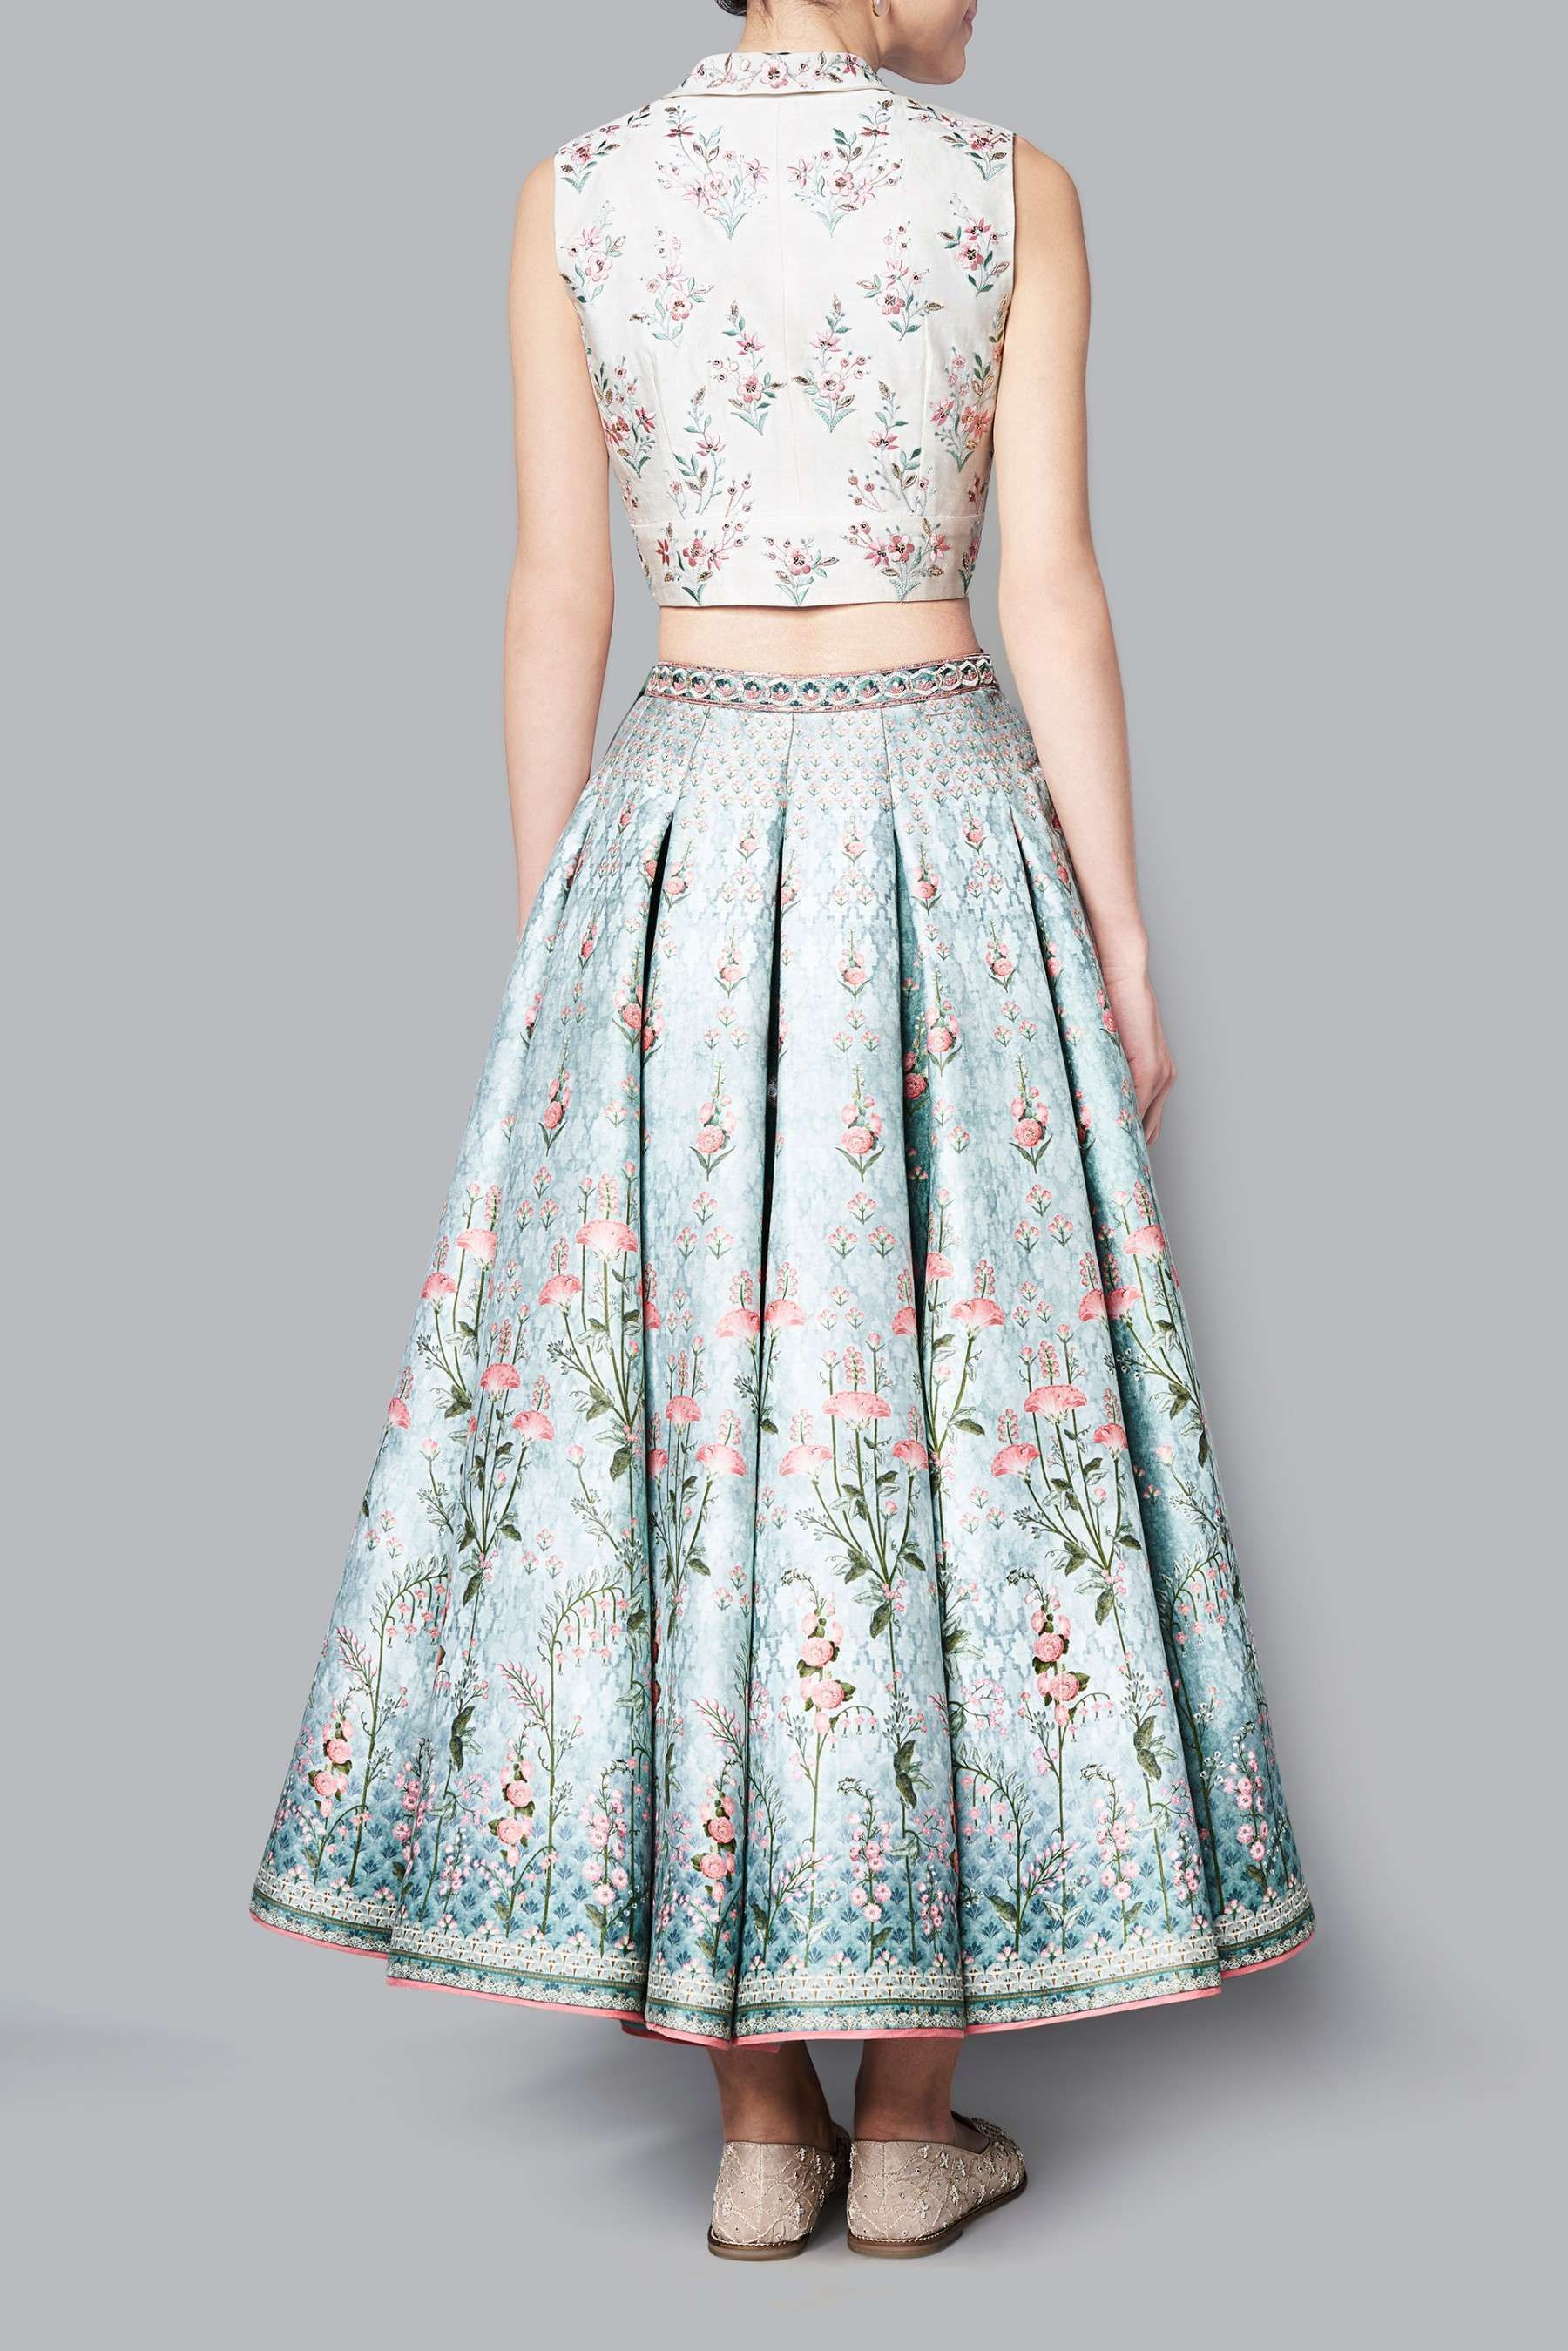 Aditri Crop Top And Skirt Tops Skirts Woman Indian Skirt And Top Indian Bridal Dress Crop Top Outfits Indian